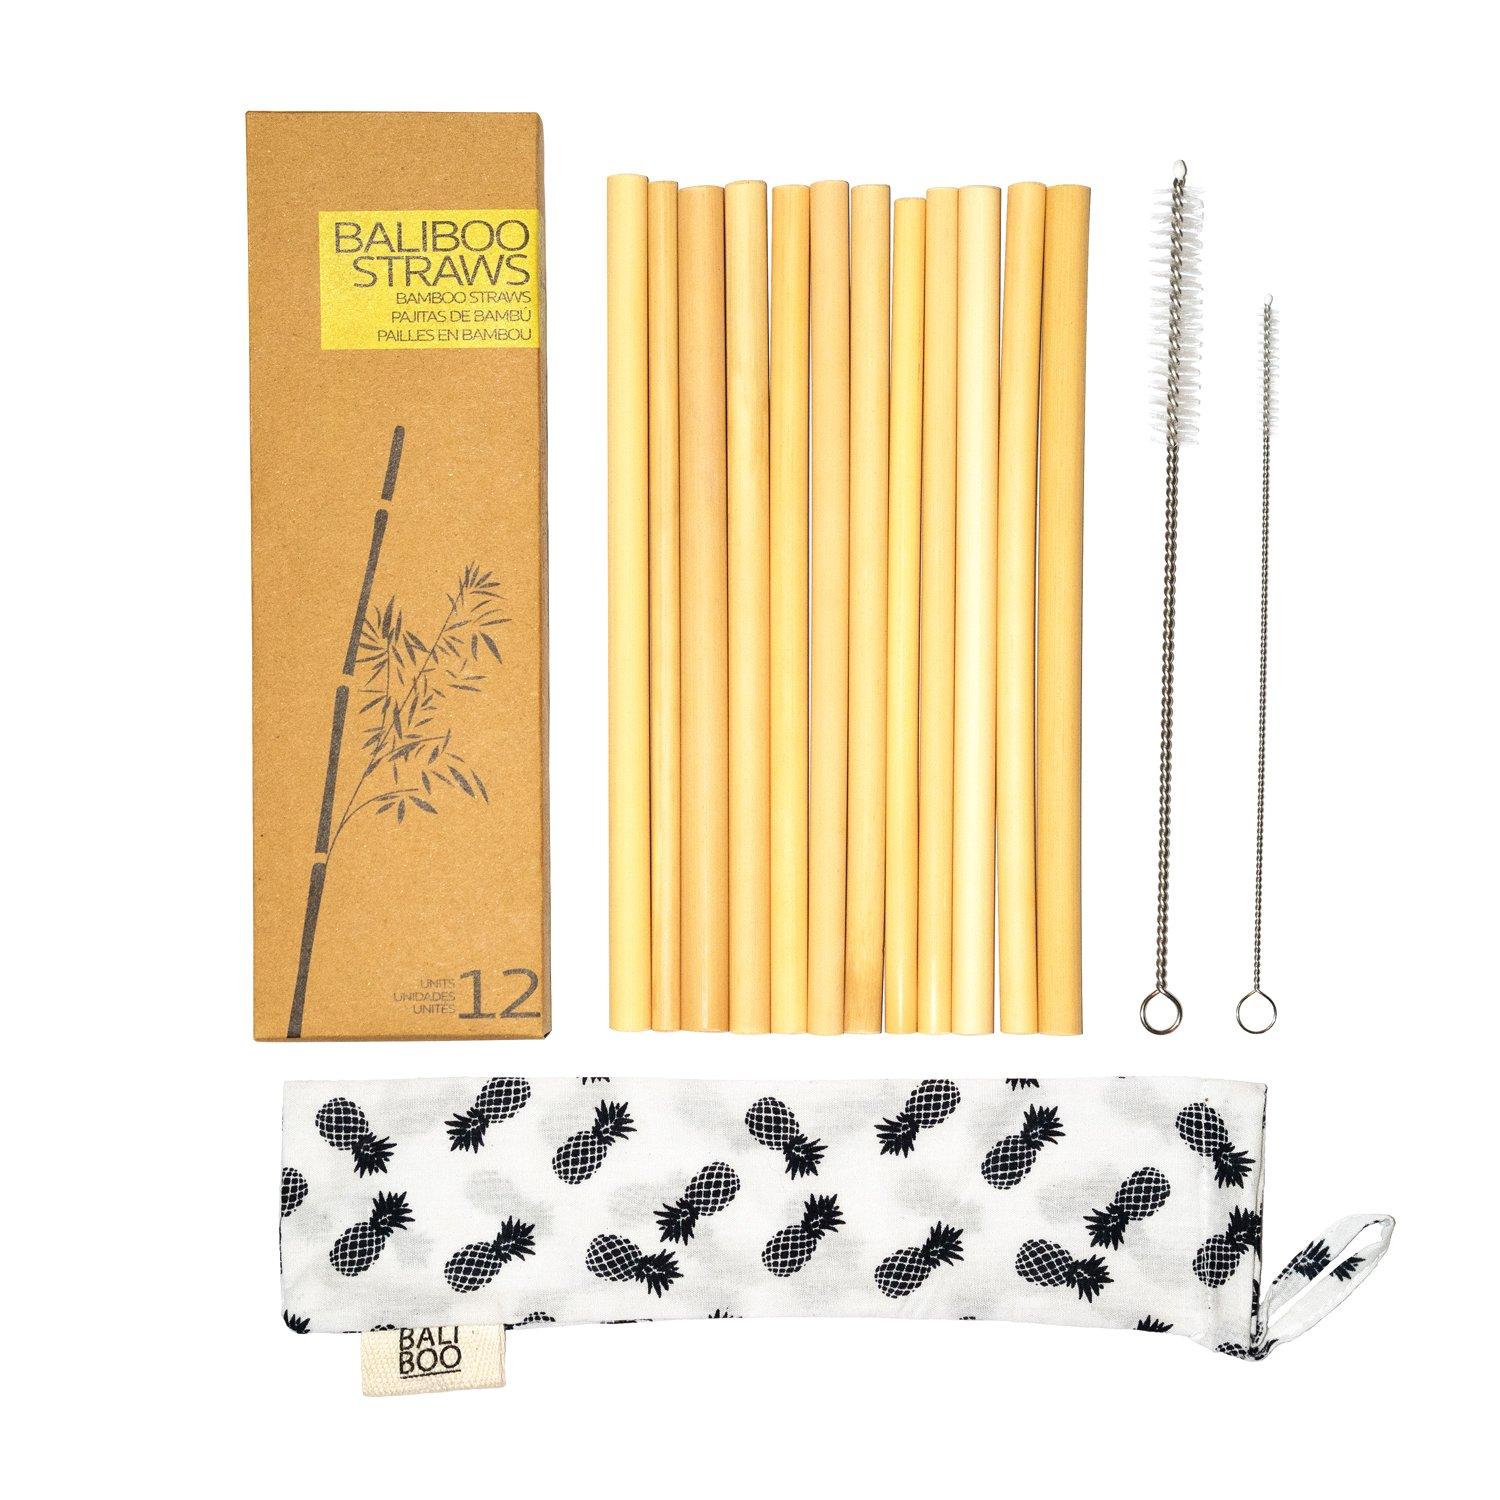 12 Bamboo Straws of 8 Inches | 100% Natural, Reusable, and Washable | Includes 2 Cleaning Brushes and a Cotton Pouch | Assorted Widths | Handmade in Bali